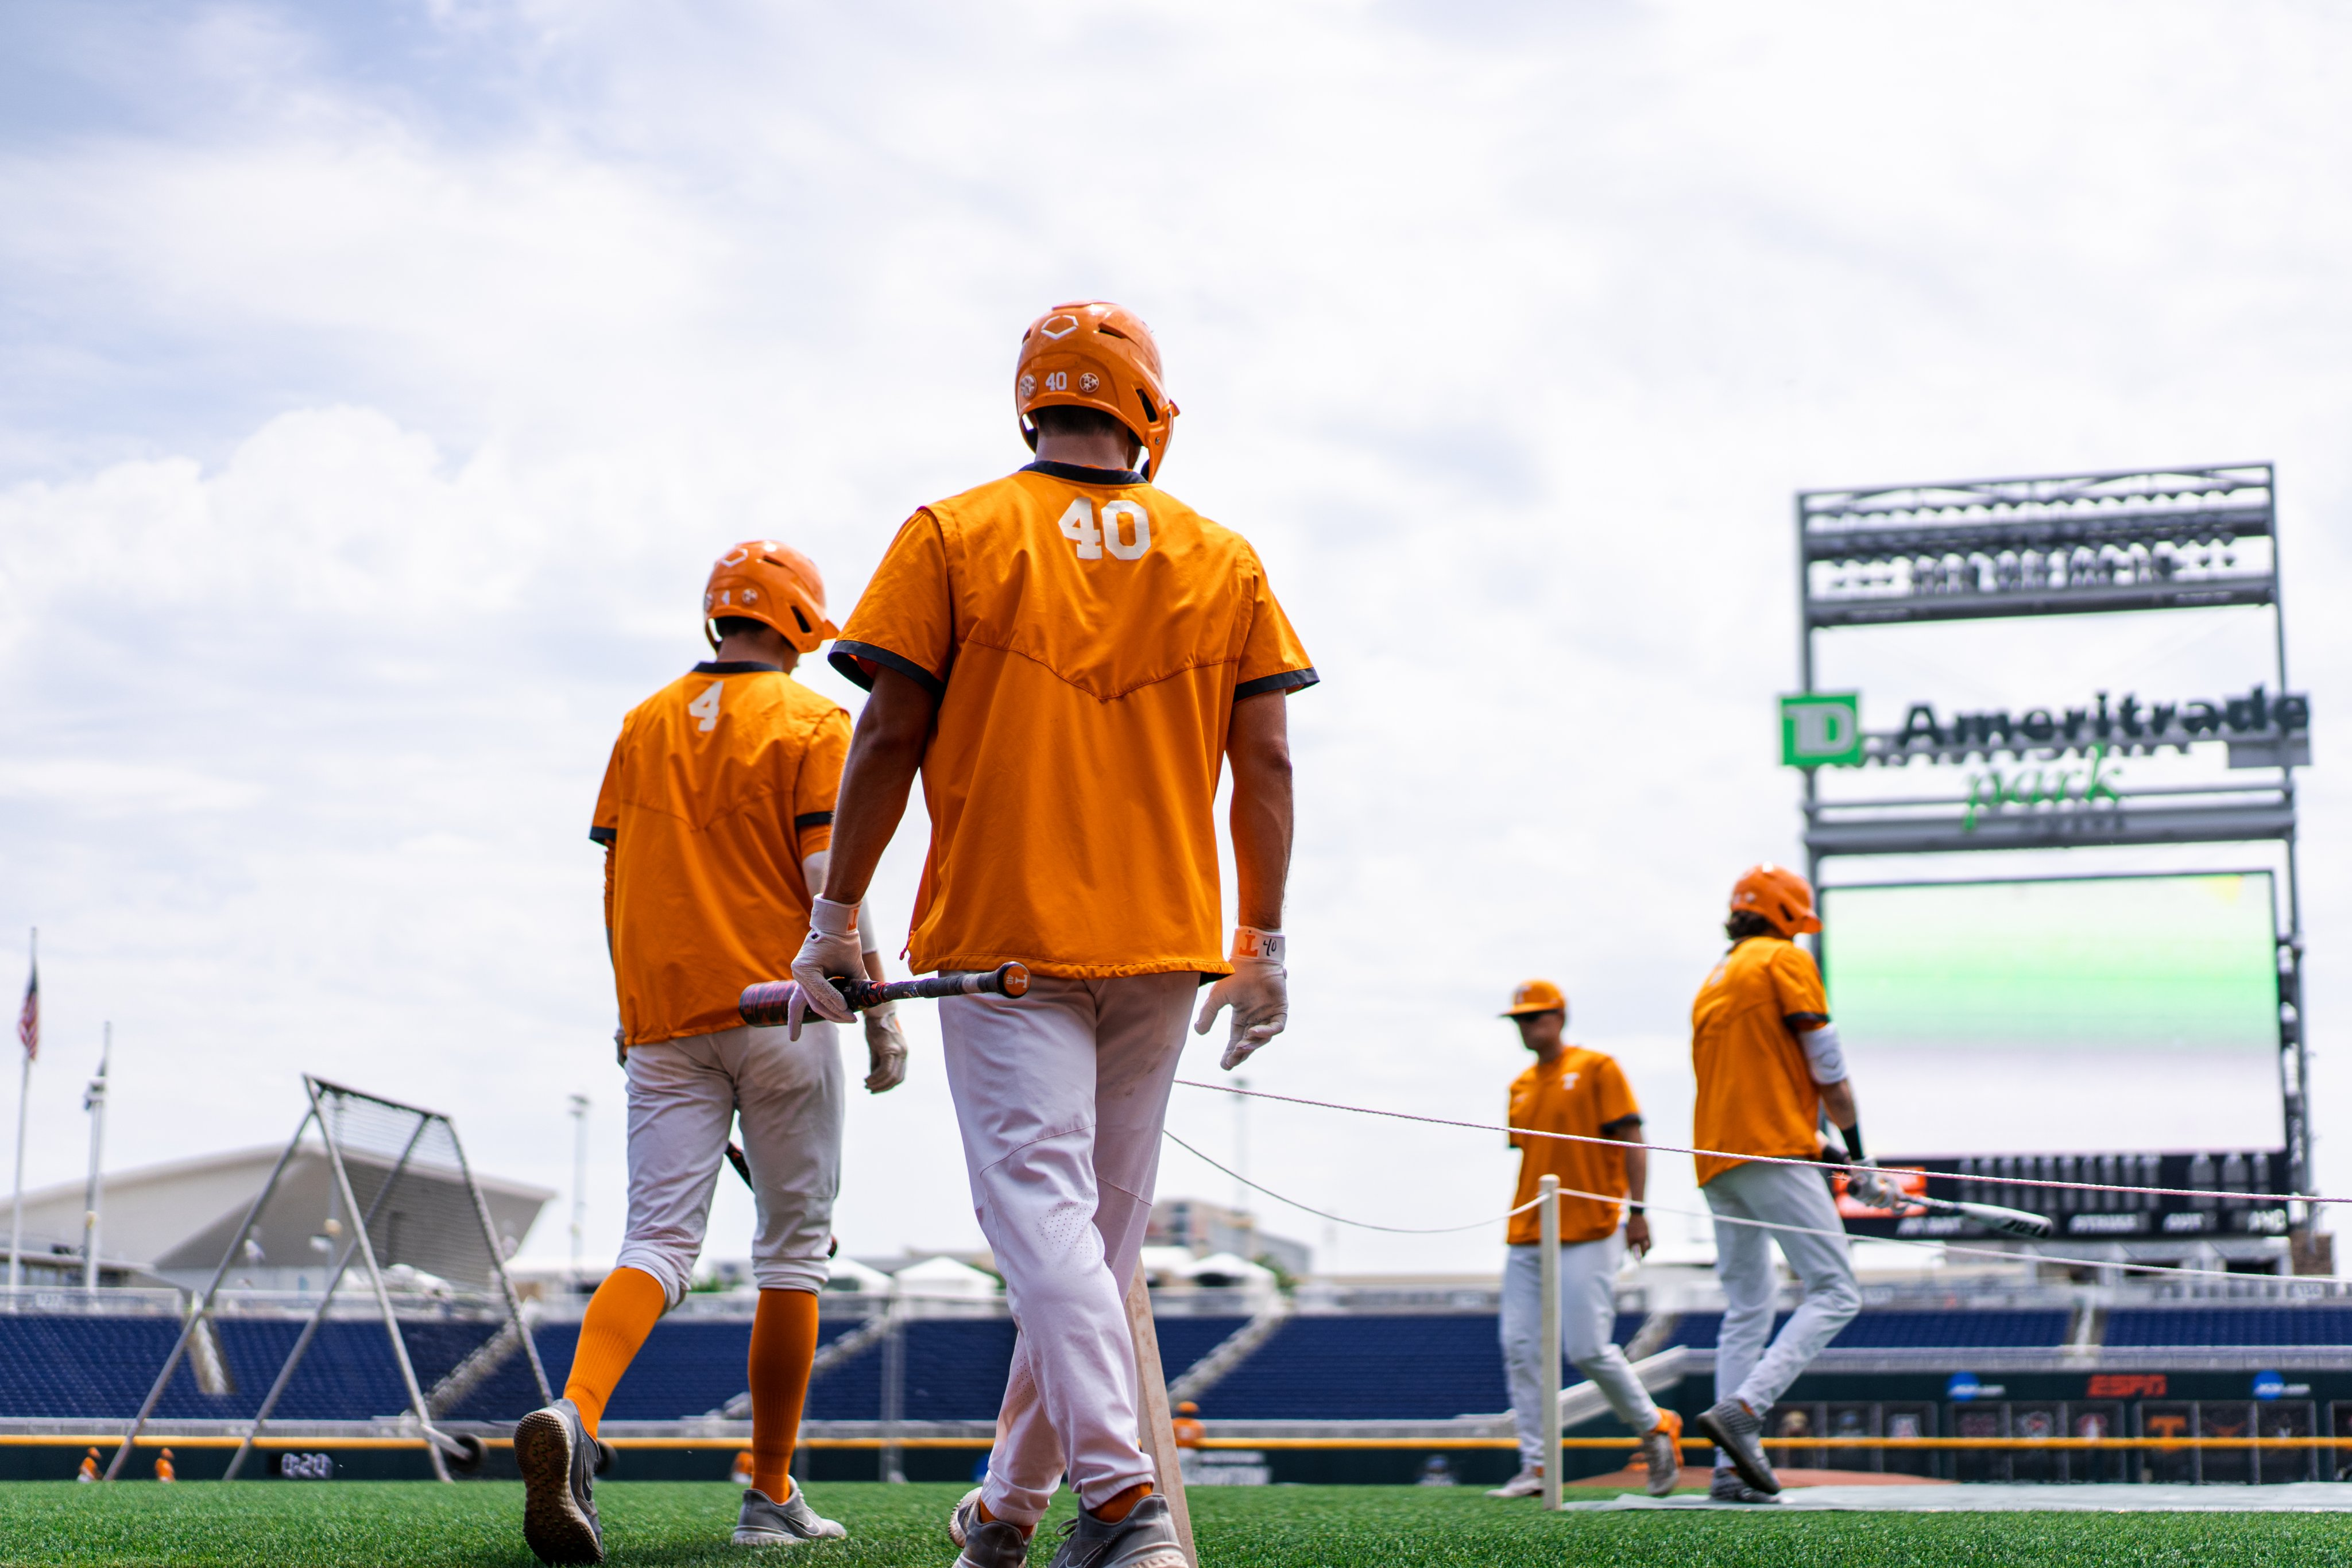 PREVIEW: Tennessee and Virginia Meet in Omaha for CWS